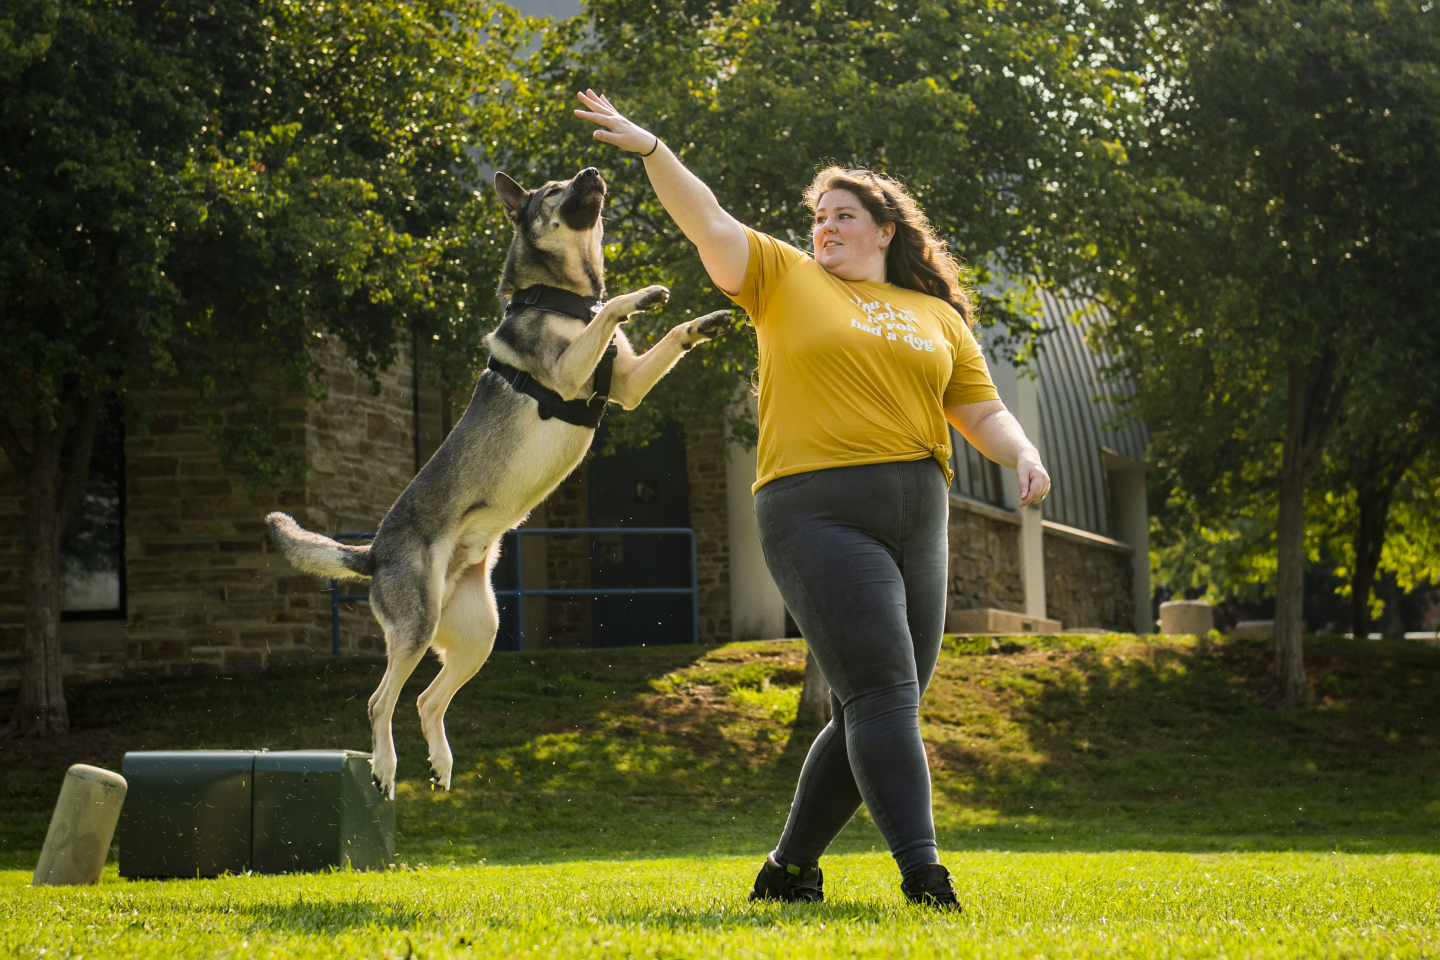 Shock Collars May Make Dogs More Pessimistic